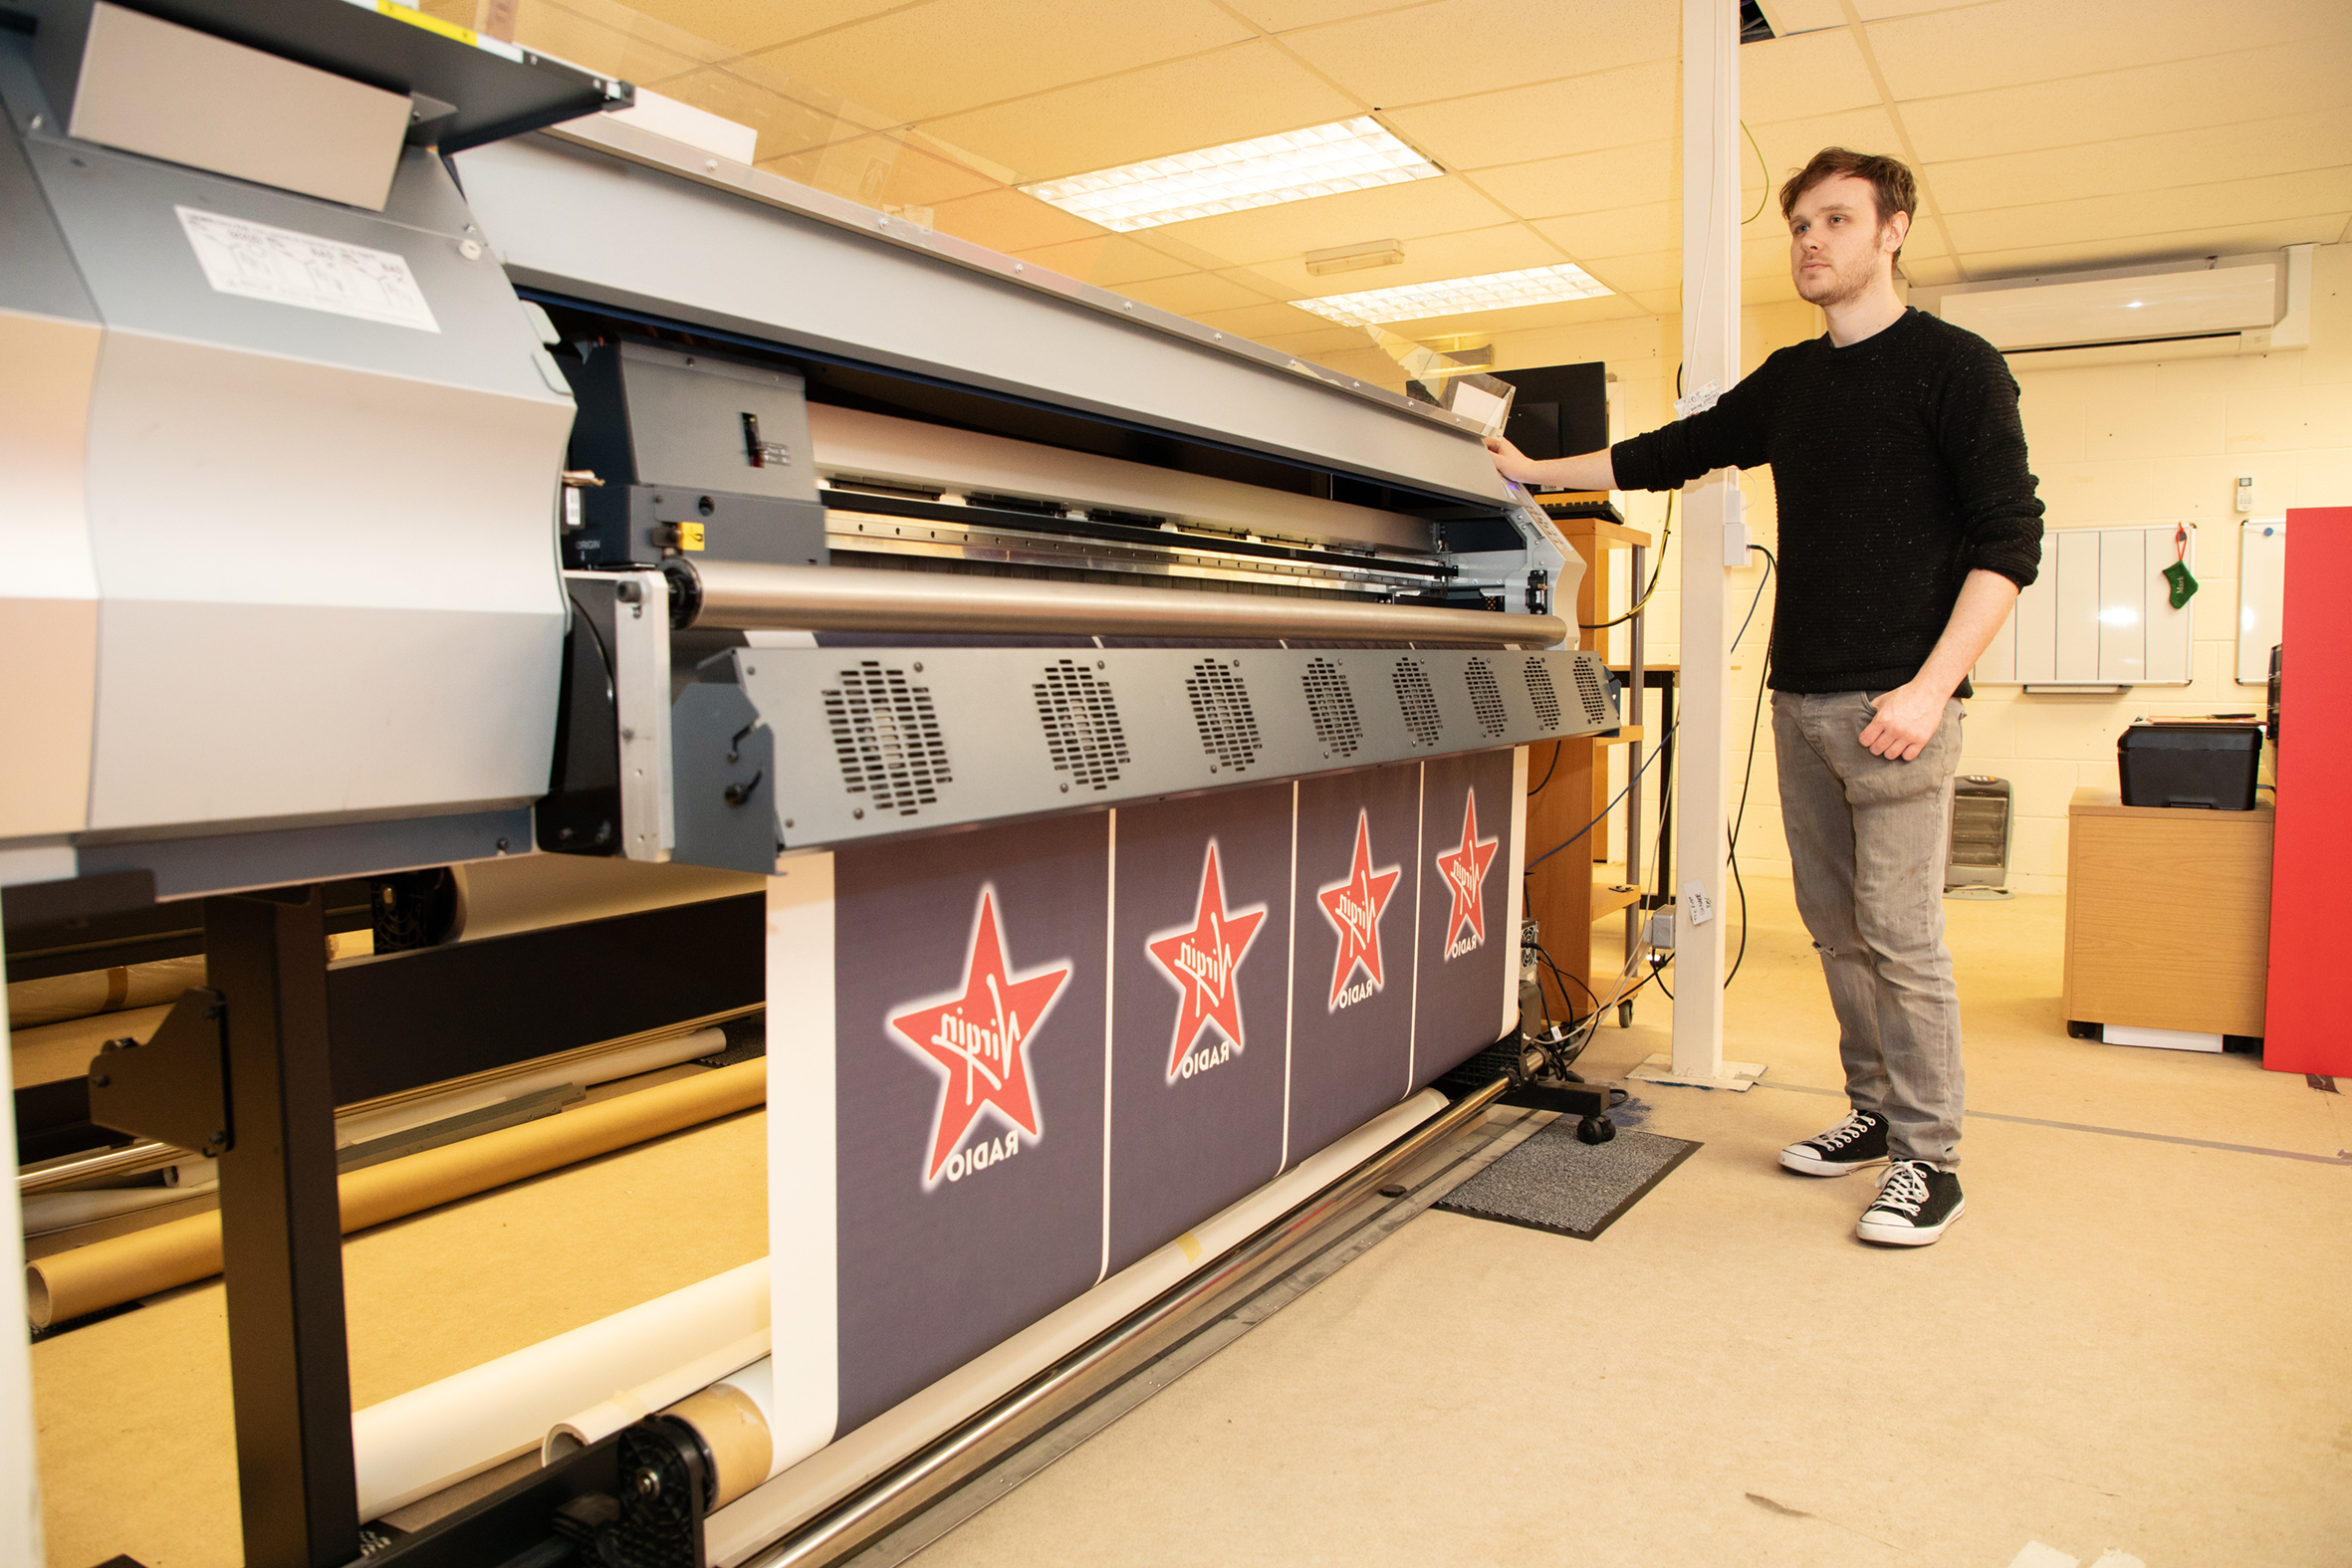 Dan, Production keeps thing running smoothly in the print room.